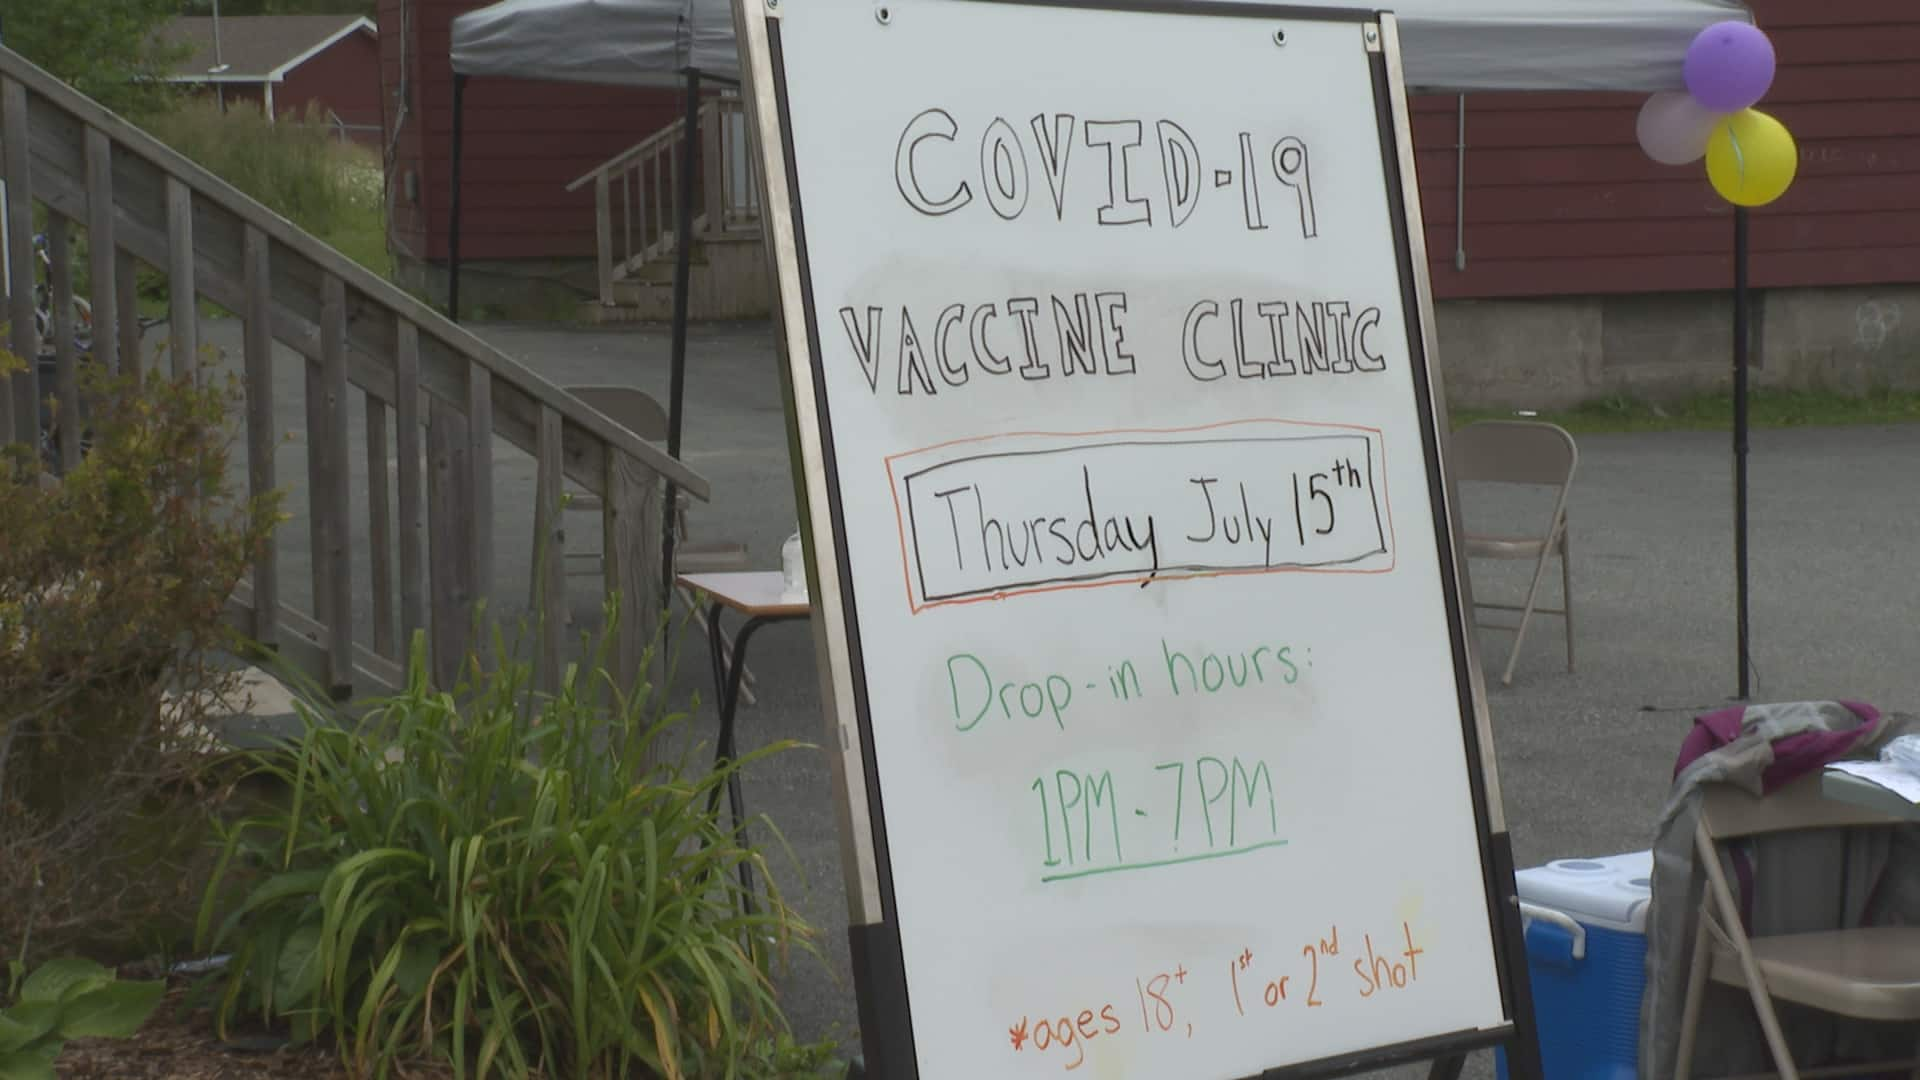 Pop-up clinic gives people in north end neighbourhood of Saint John better access to  vaccinations